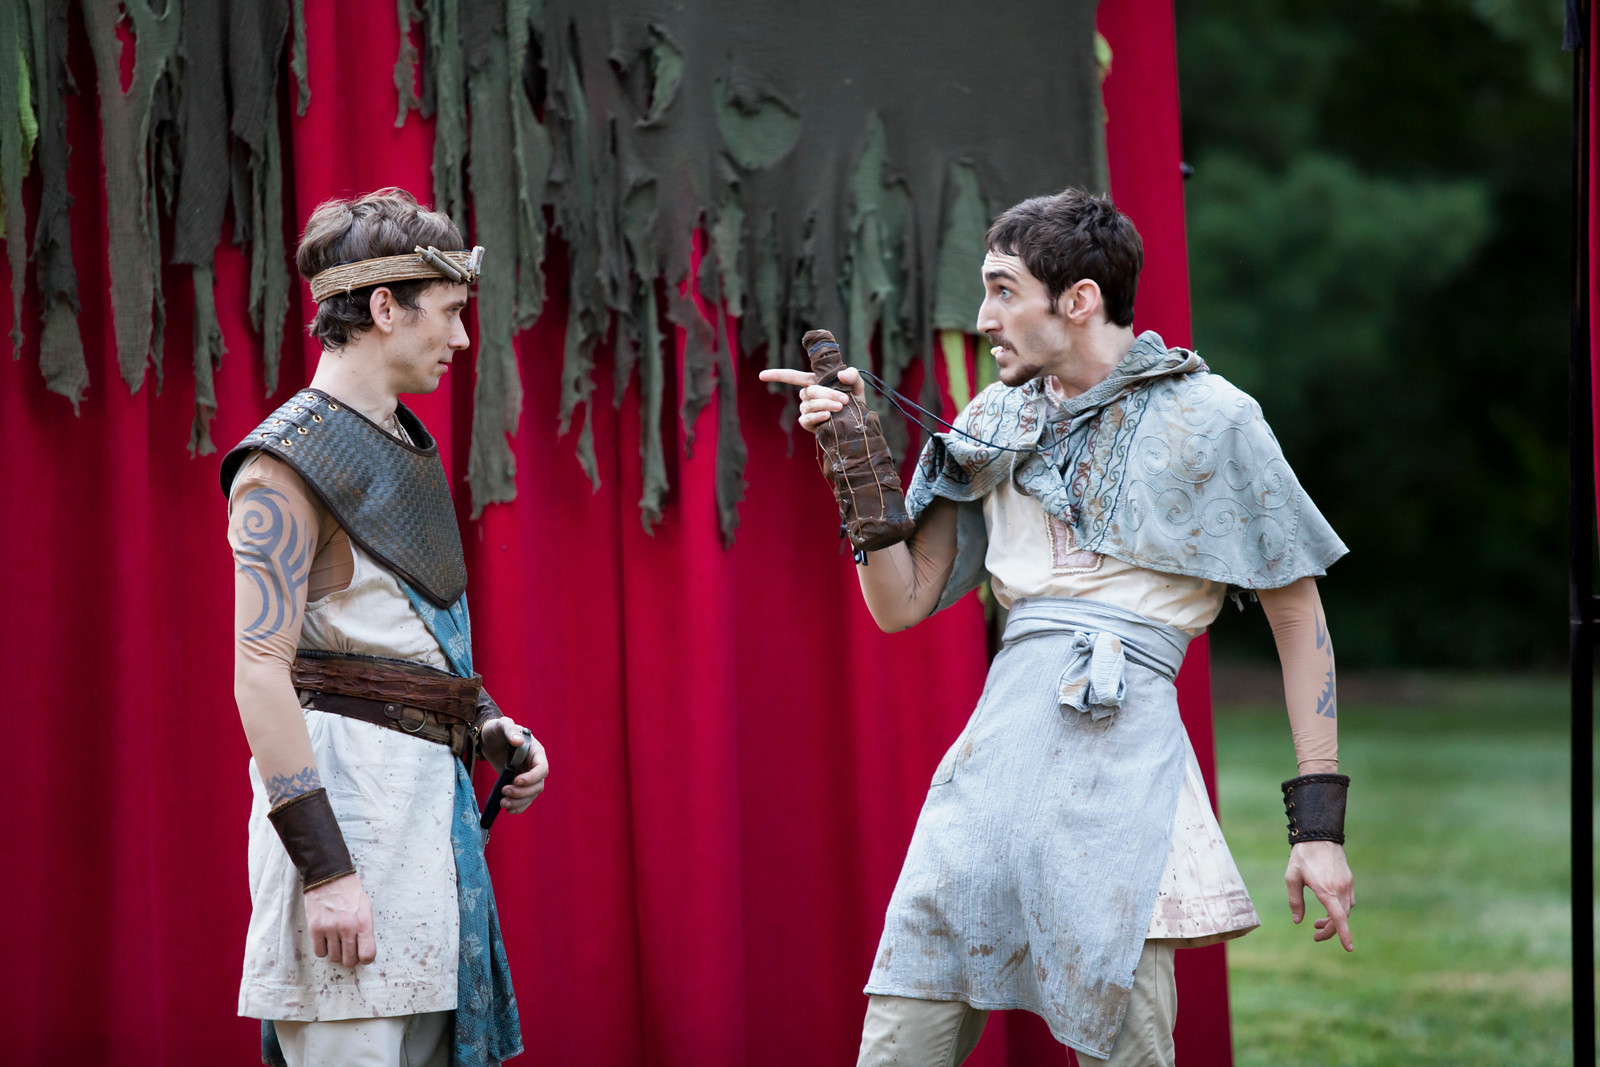 """Kyle Brumley as Macduff and Patrick E. Phillips as The Porter in Cincinnati Shakespeare Company's """"Macbeth."""" Photo credit: Mikke Schaffner Photography."""